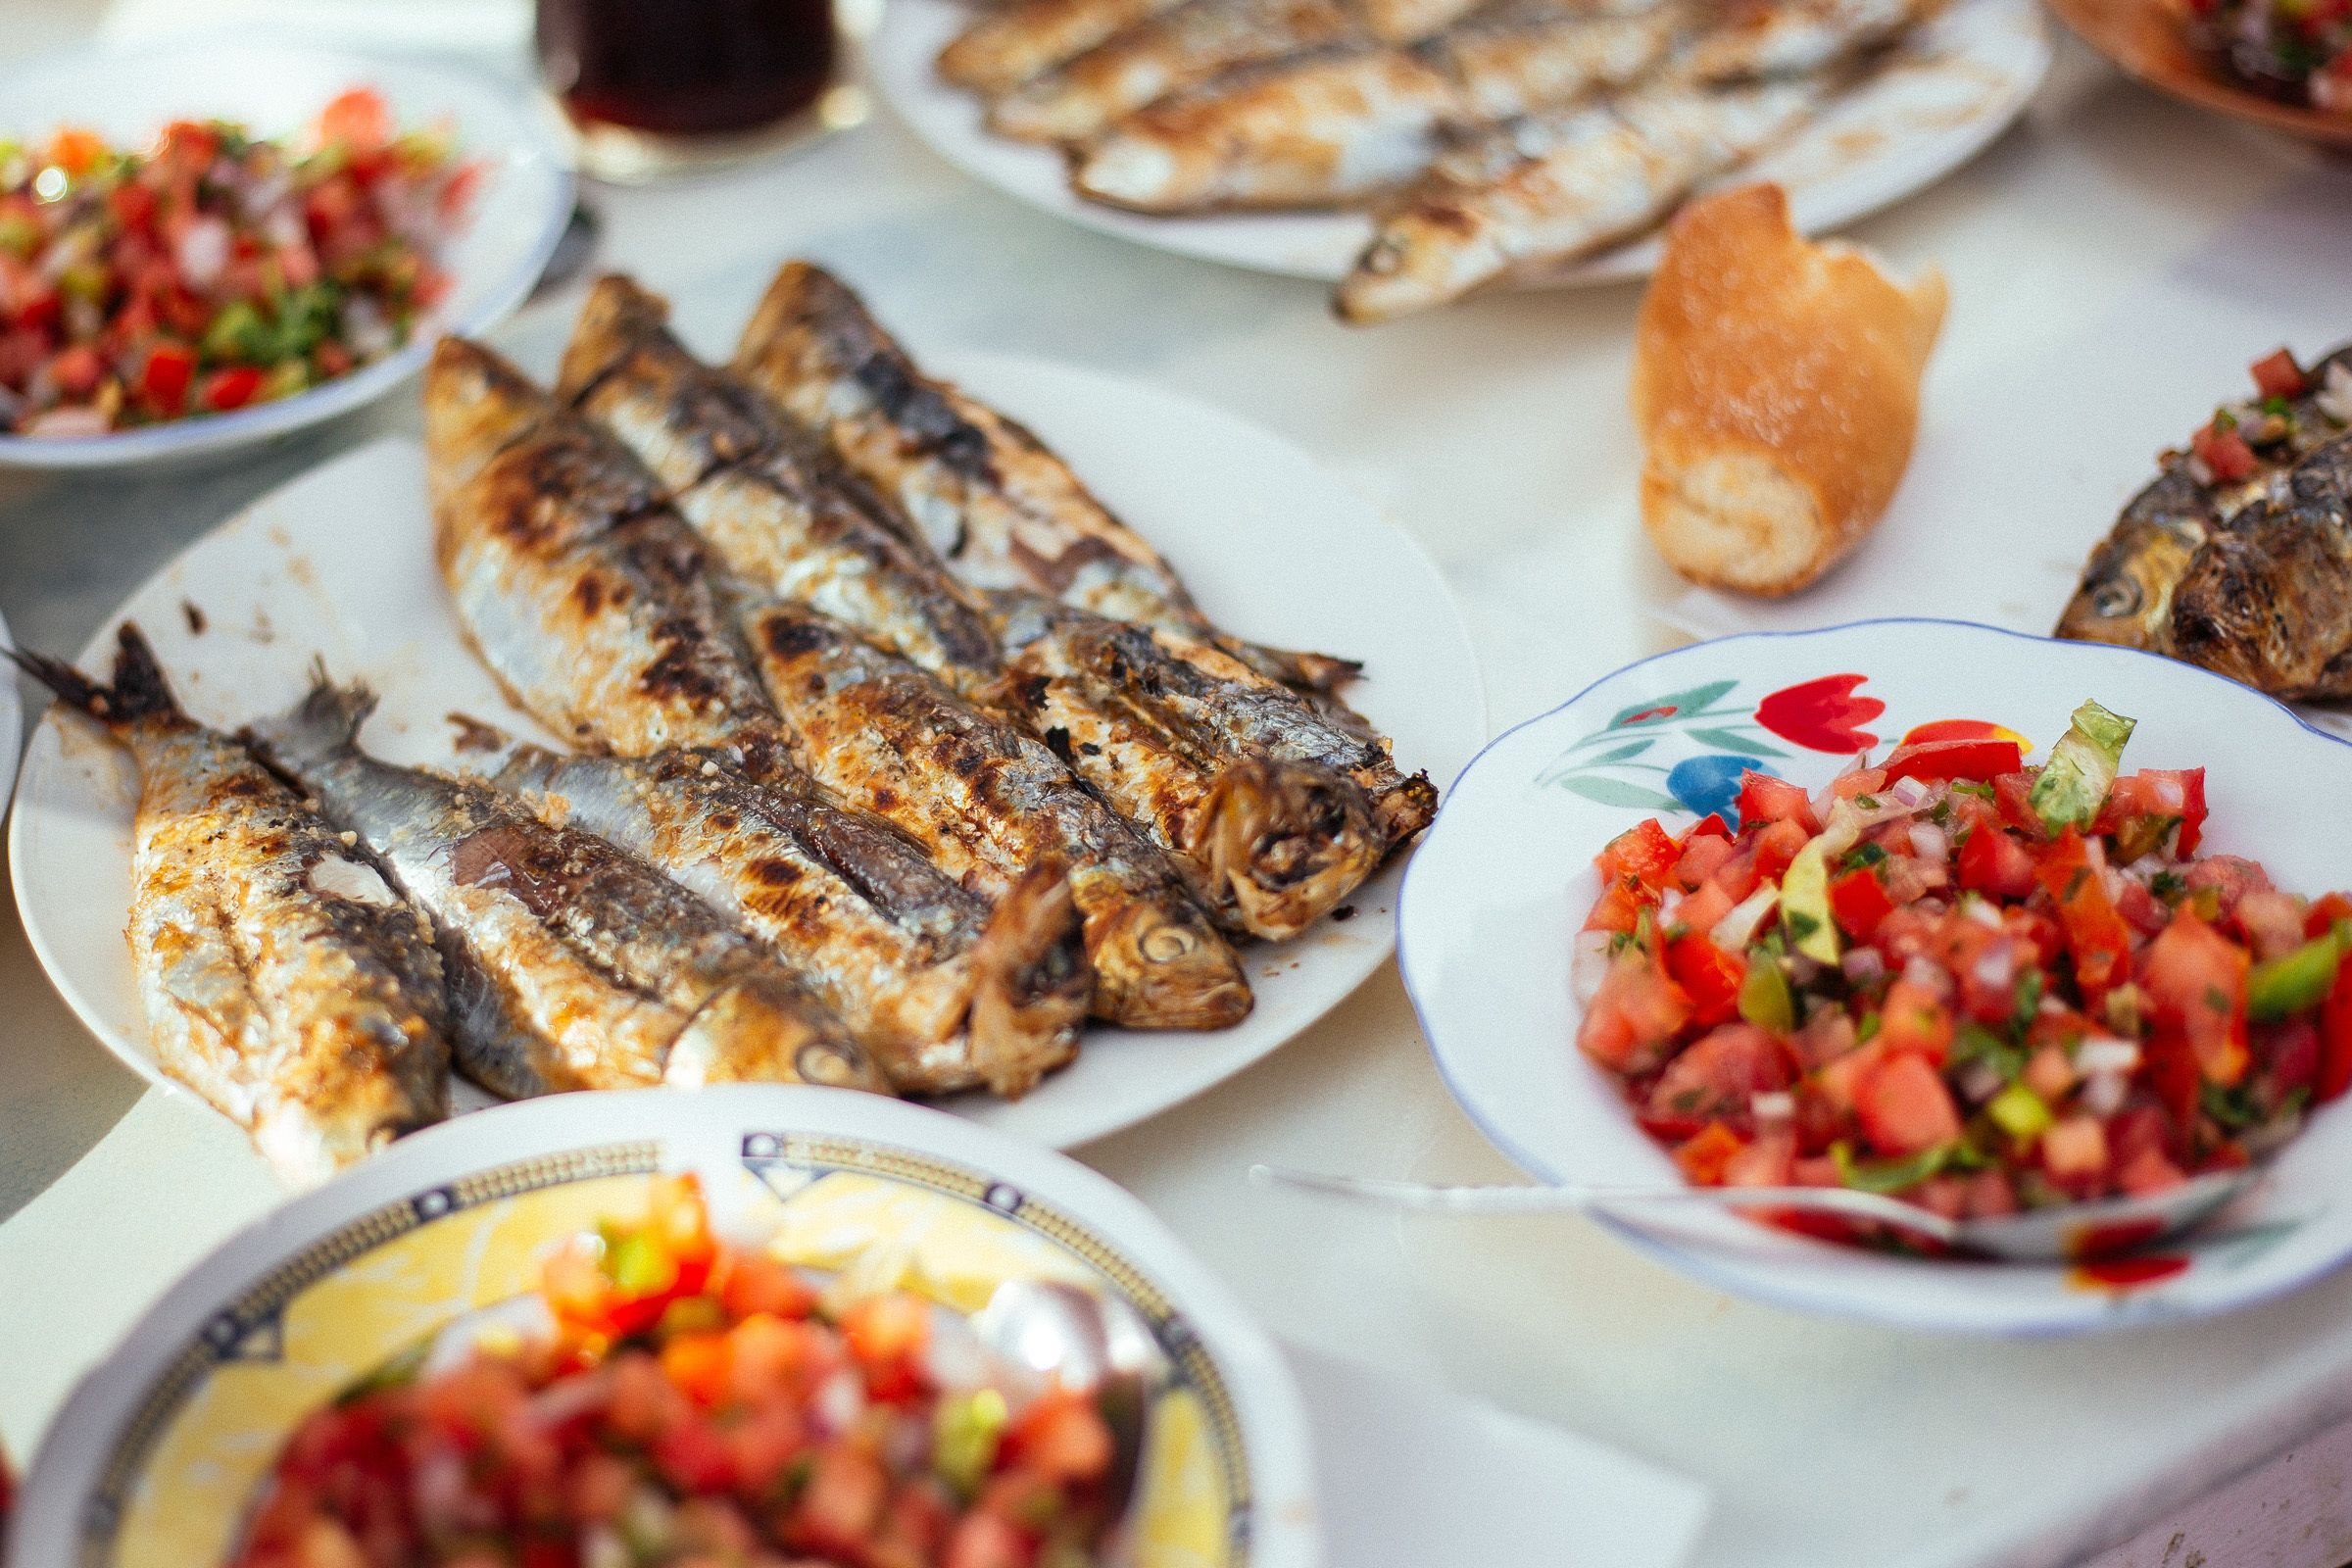 Table of cooked fish and bowls of chopped vegetables